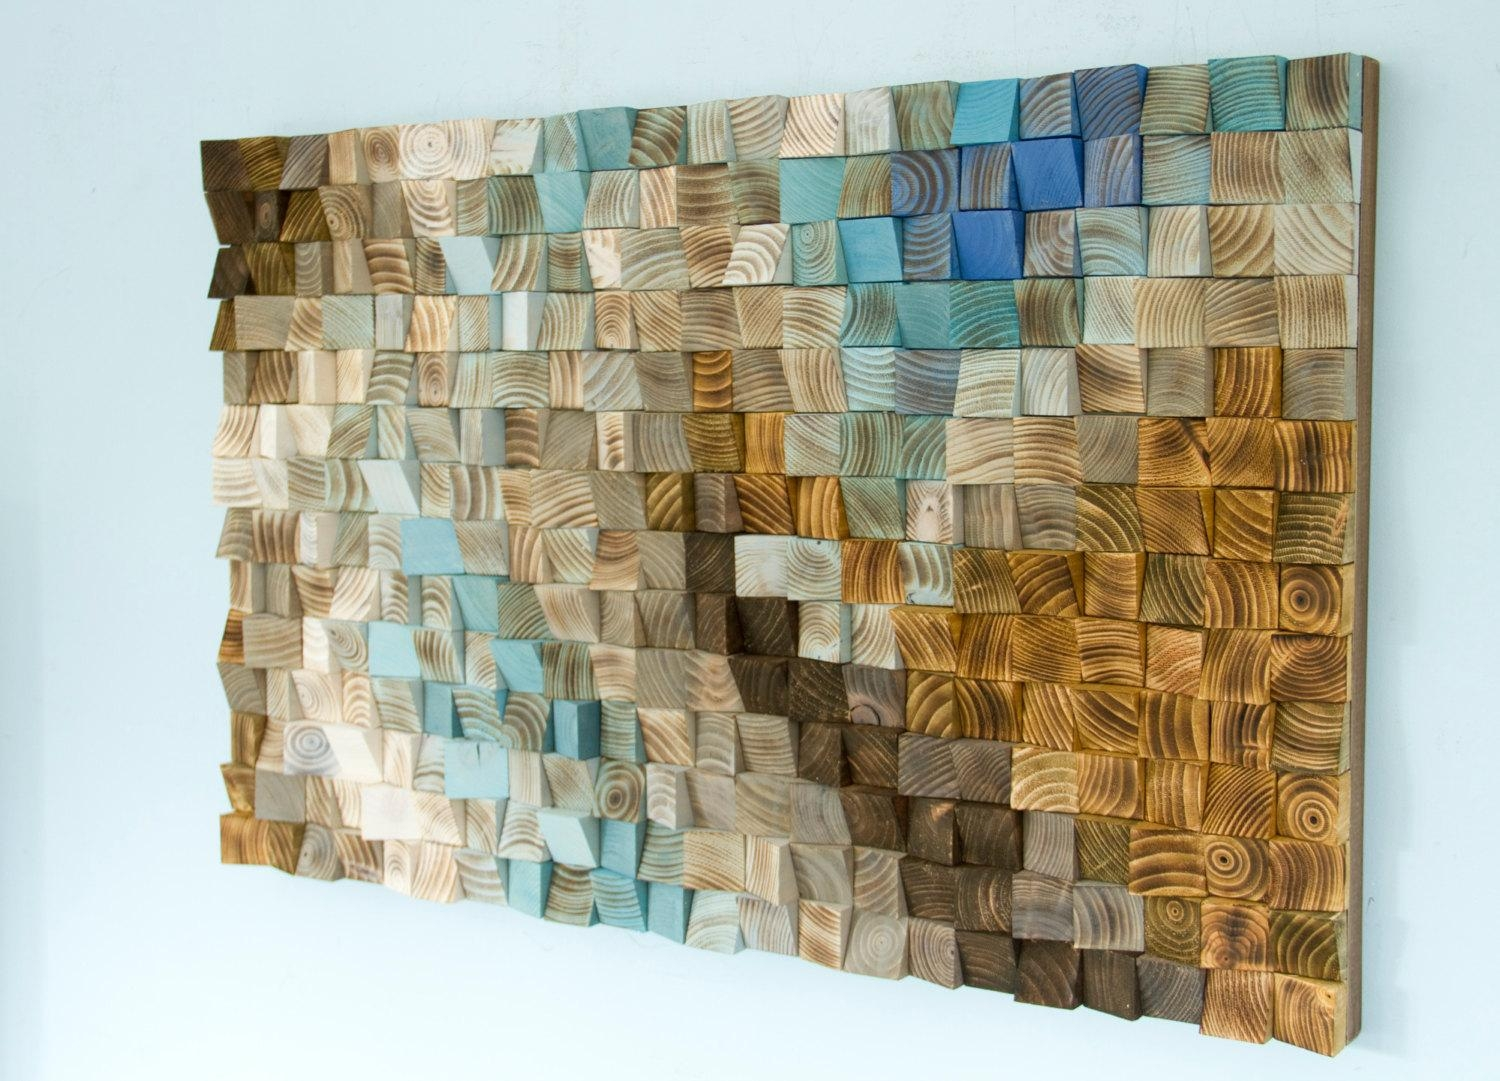 Mosaic Inlaid Wood Marquetry Vtg Sorrento, Italy Wall Hanging Inside Italian Inlaid Wood Wall Art (View 4 of 20)